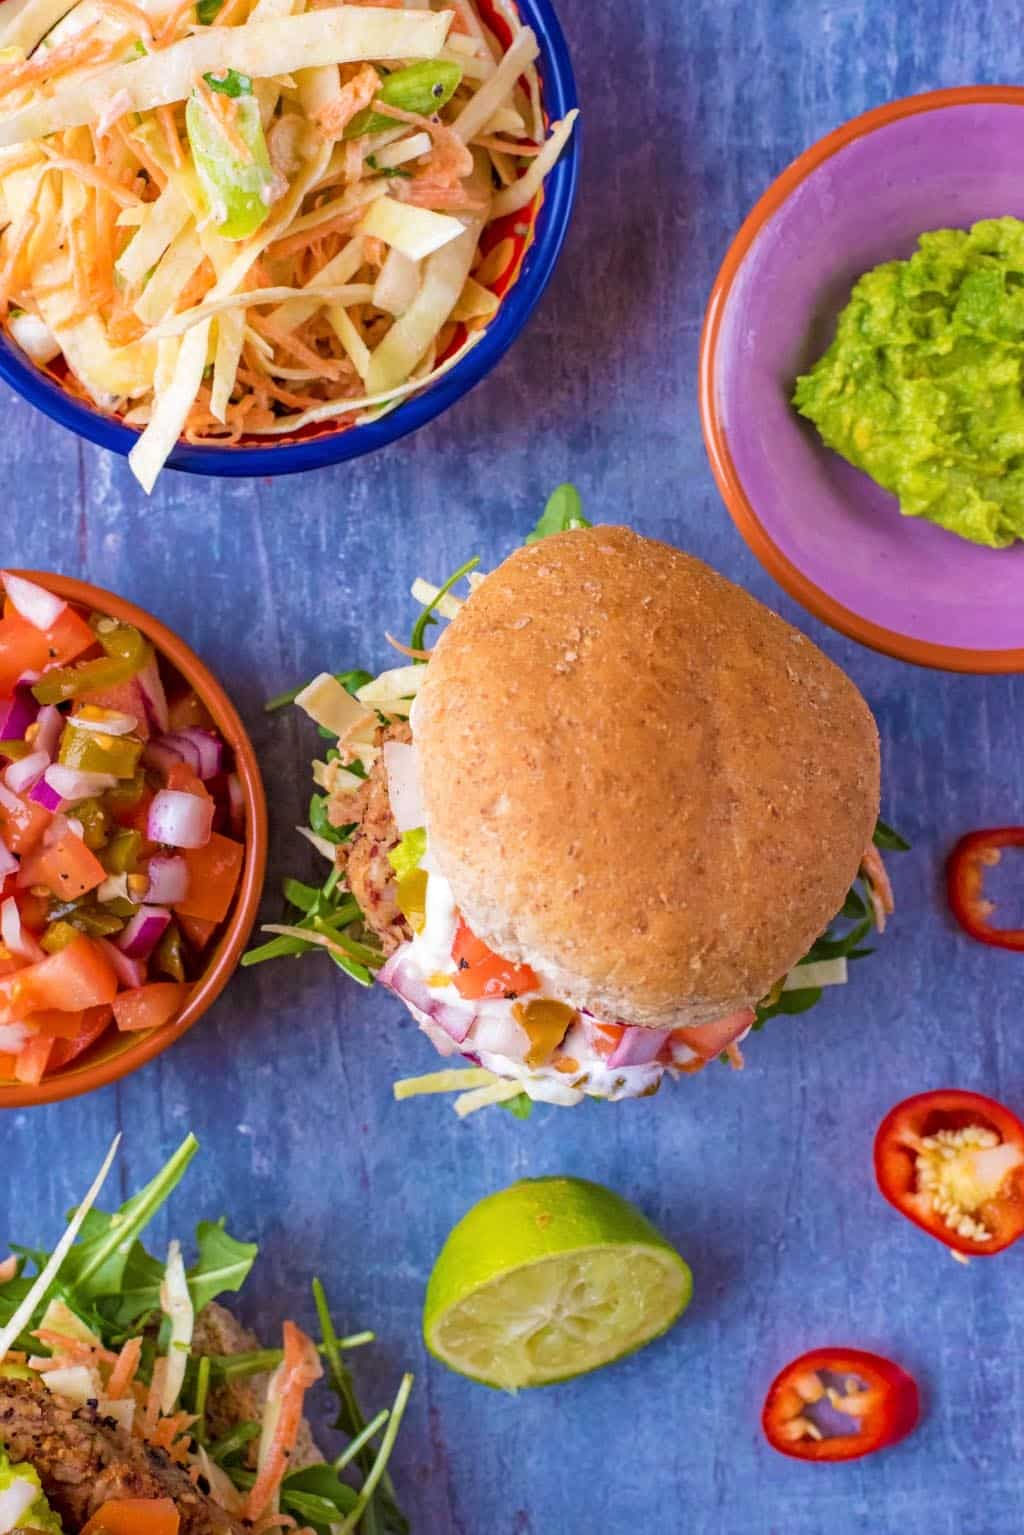 A burger in a bun next to a dish of guacamole, salsa and coleslaw